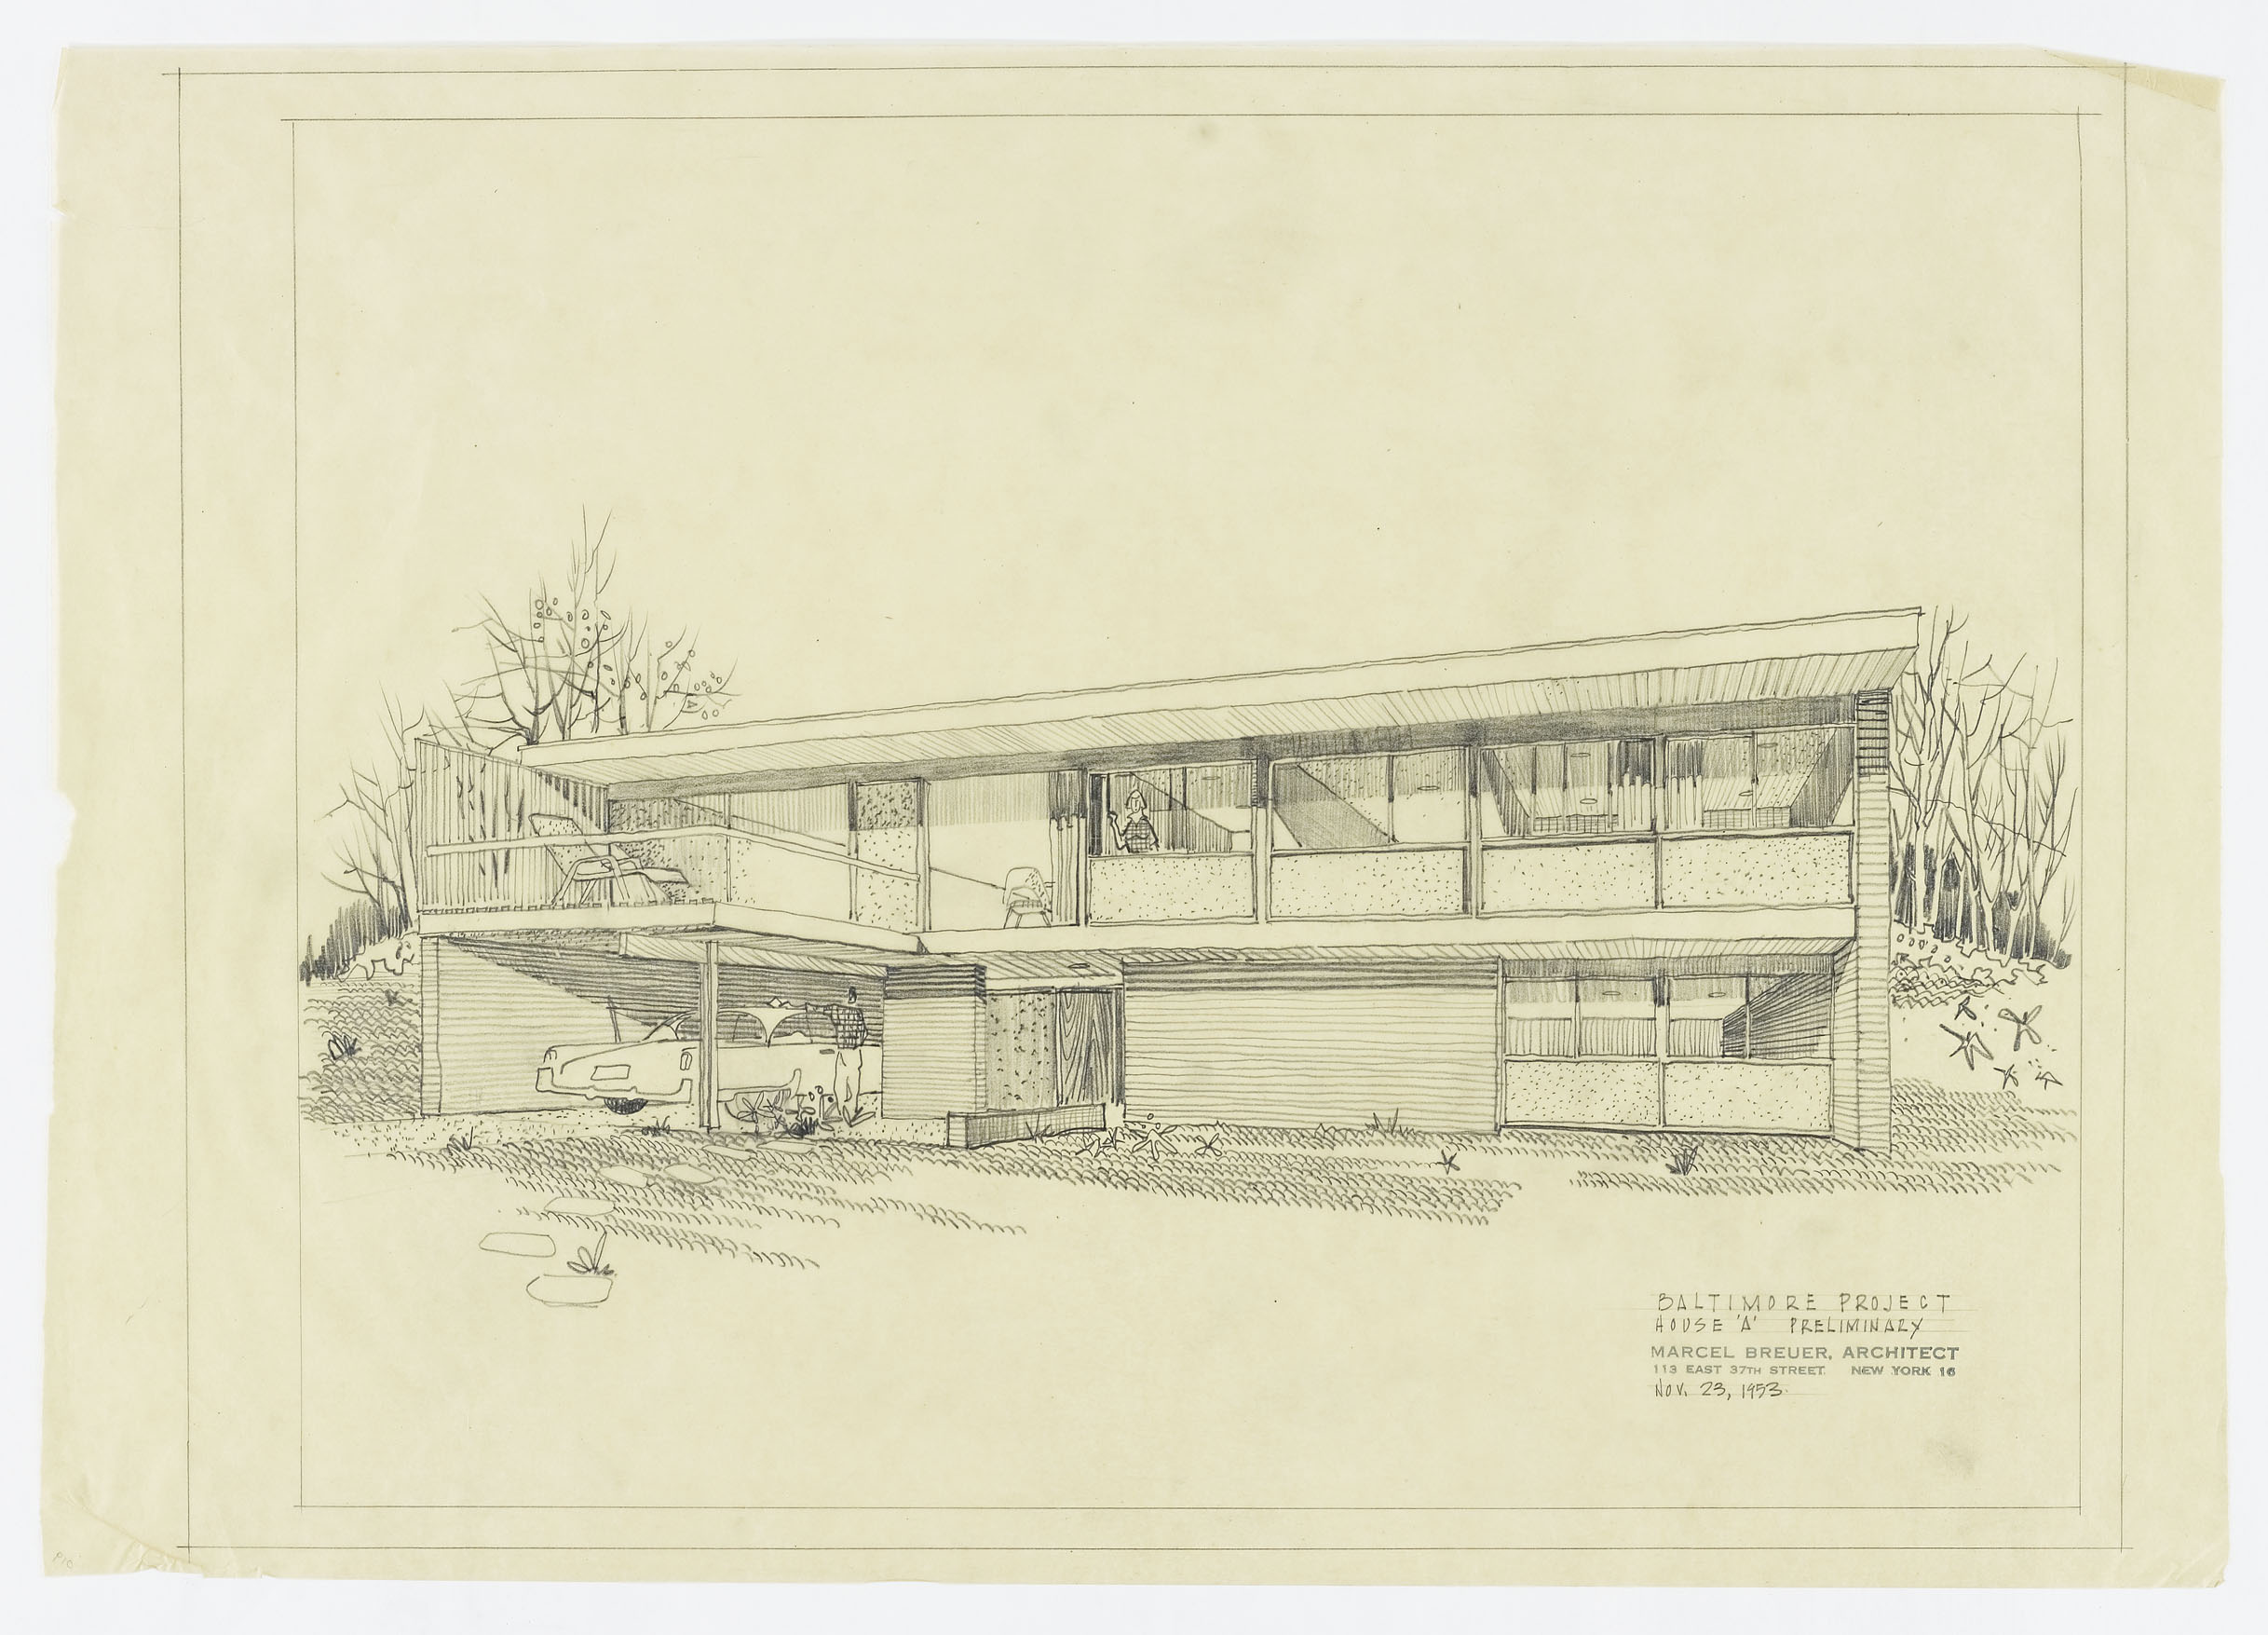 Click to select: House A Preliminary: Sketch Renderings